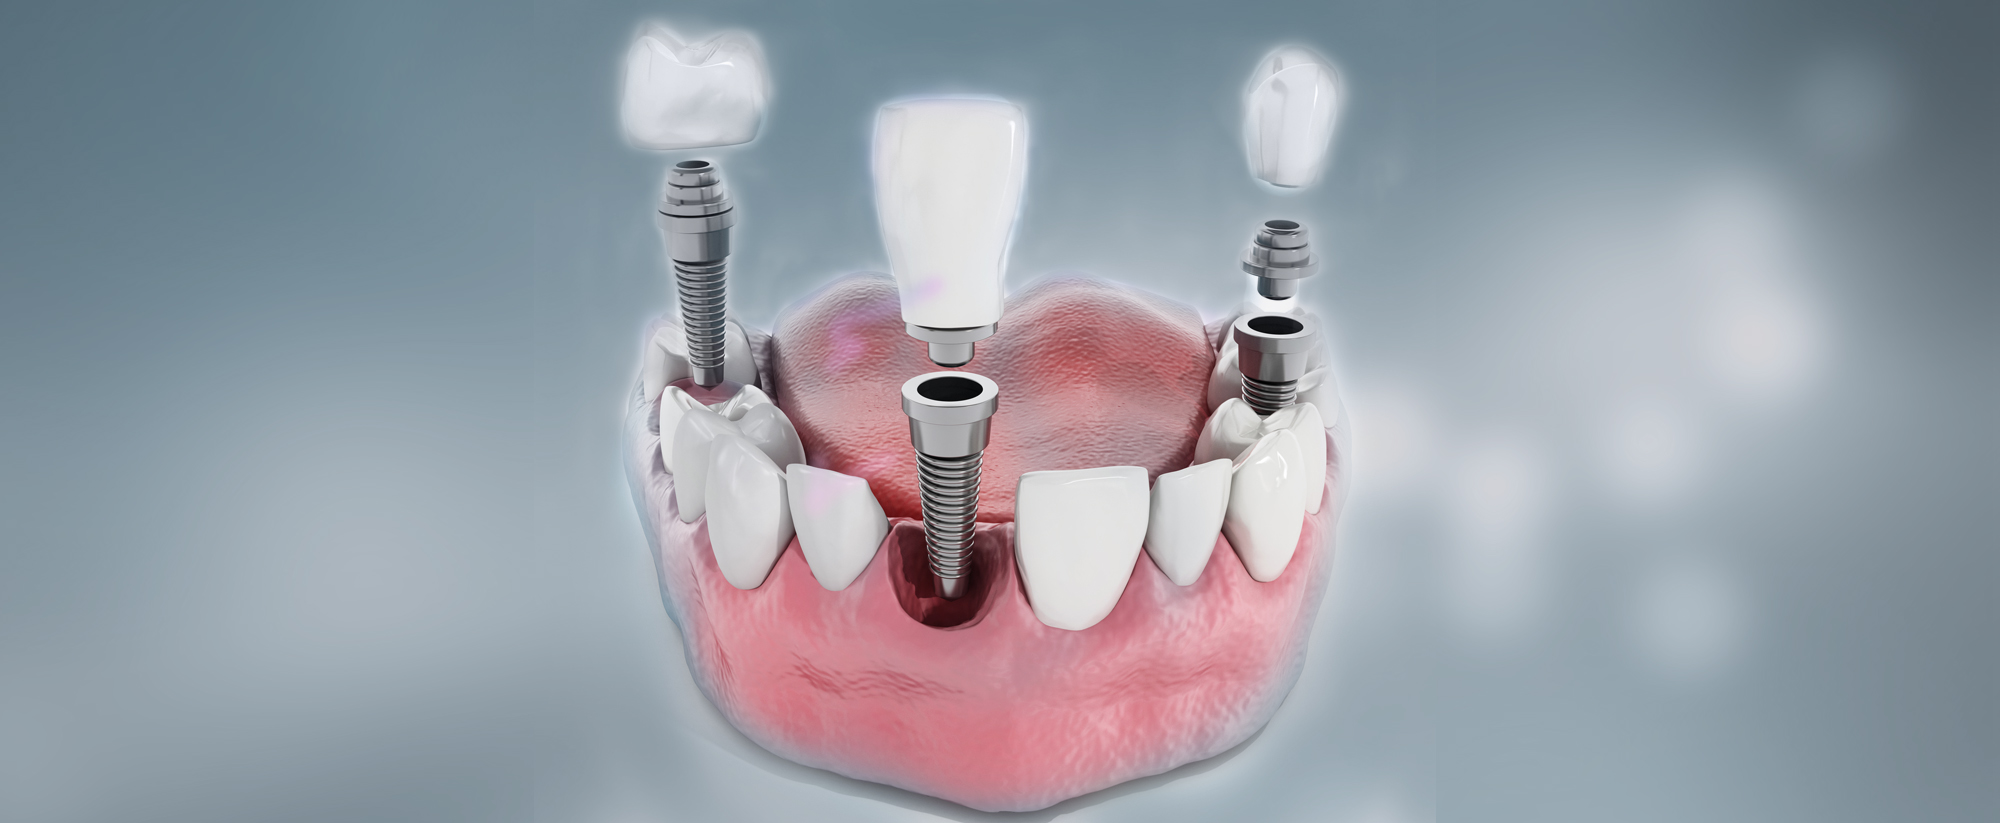 https://burnabysquaredental.com/wp-content/uploads/2015/11/Two.jpg